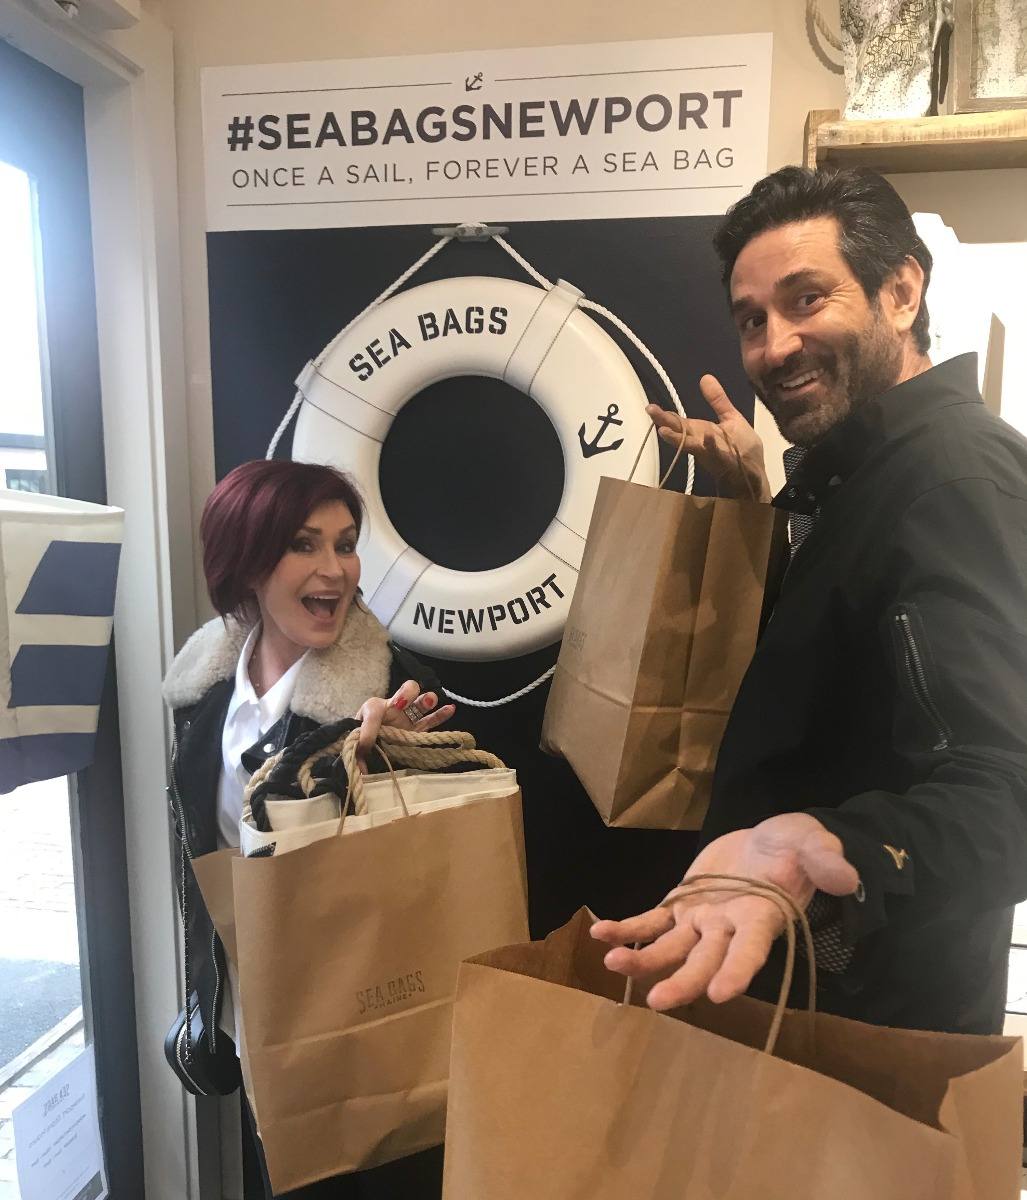 Sharon Osbourne sighting at the Sea Bags retail store in Newport, Rhode Island